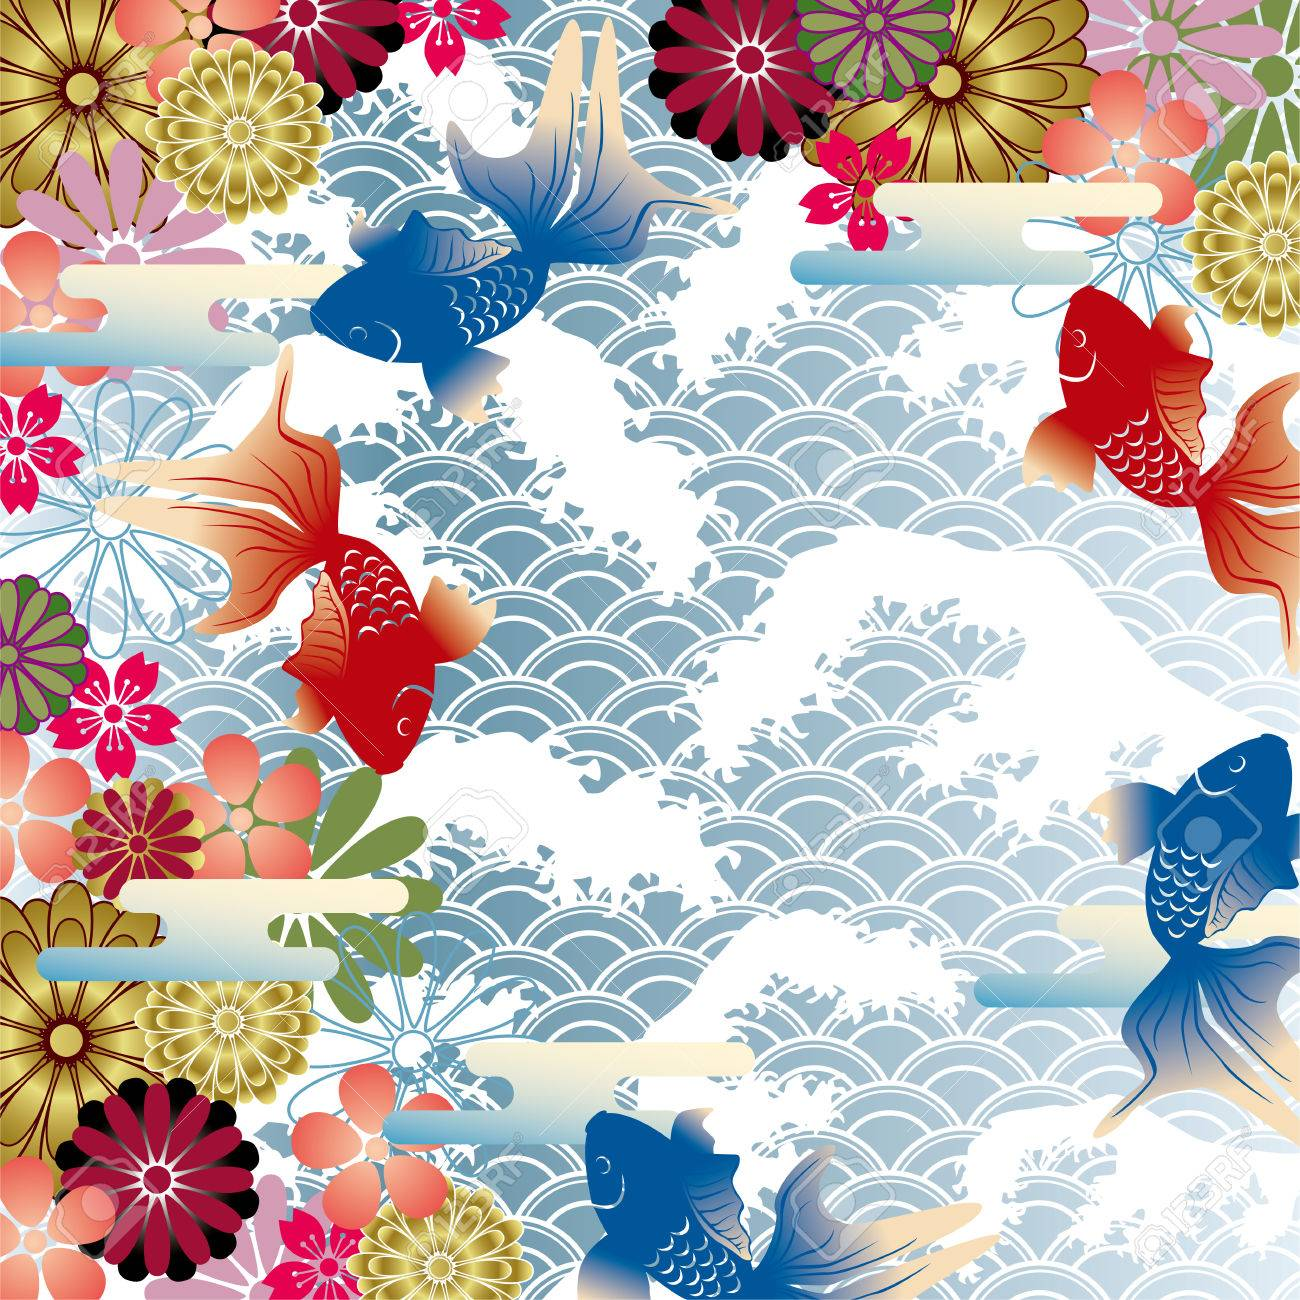 Japanese Style japanese style background royalty free cliparts, vectors, and